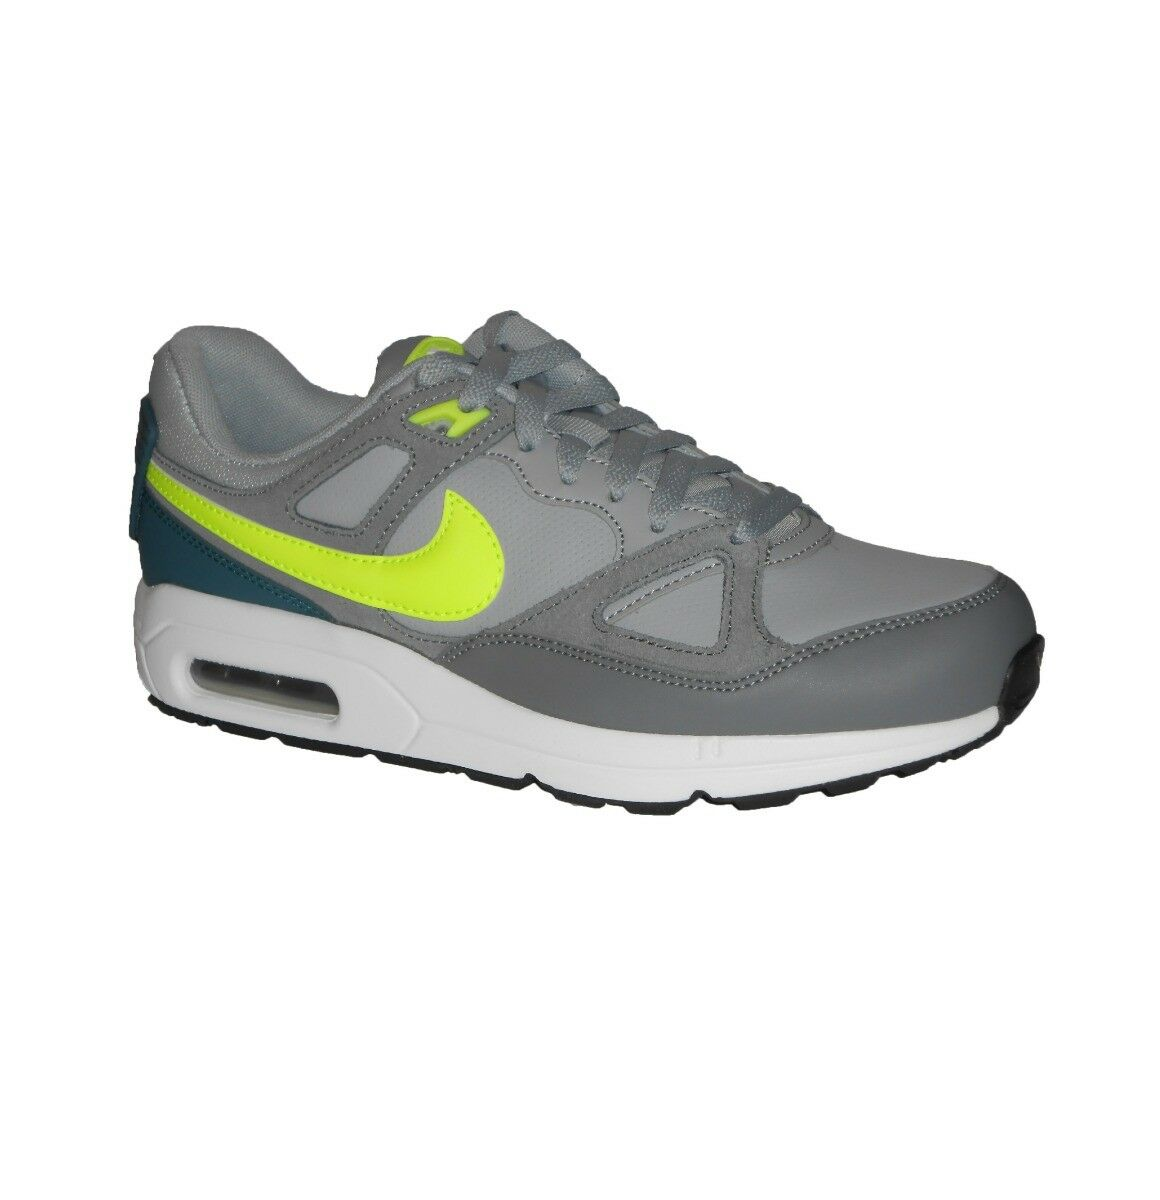 Cheap and beautiful fashion NIKE AIR MAX SPAN MENS TRAINER RUNNING SHOE WOLF GREY SIZE 7 8 9 NEW